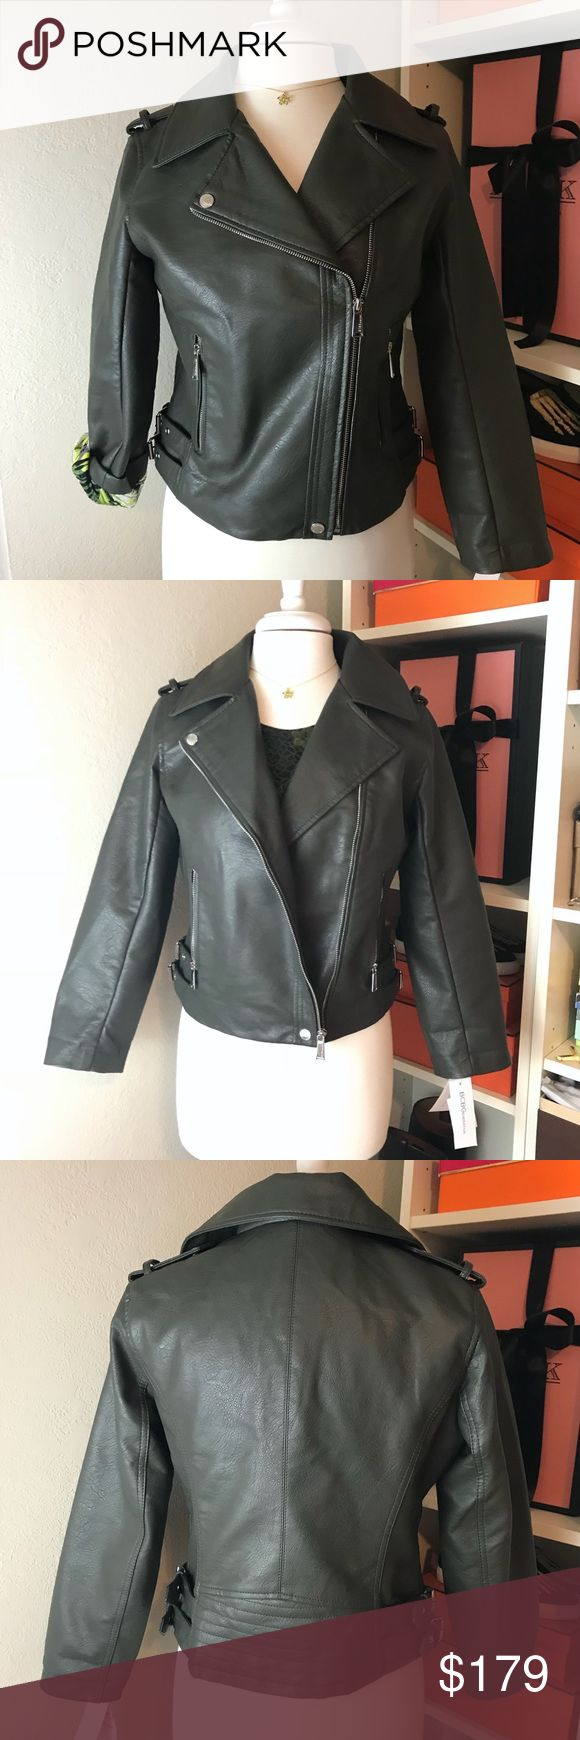 BCBG Green Moto Jacket - Vegas Leather / Faux Gorgeous green motorcycle jacket with floral green interior that can be seen if you roll or fold sleeves up. Clip closure at bottom front to keep jacket closed even if unzipped. Overlapped front classic moto design like the BCBG Ella jacket. Great detailing throughout.   🎗Sale proceeds are donated, so TY in advance. See my profile for info. ✨ BCBGeneration Jackets & Coats